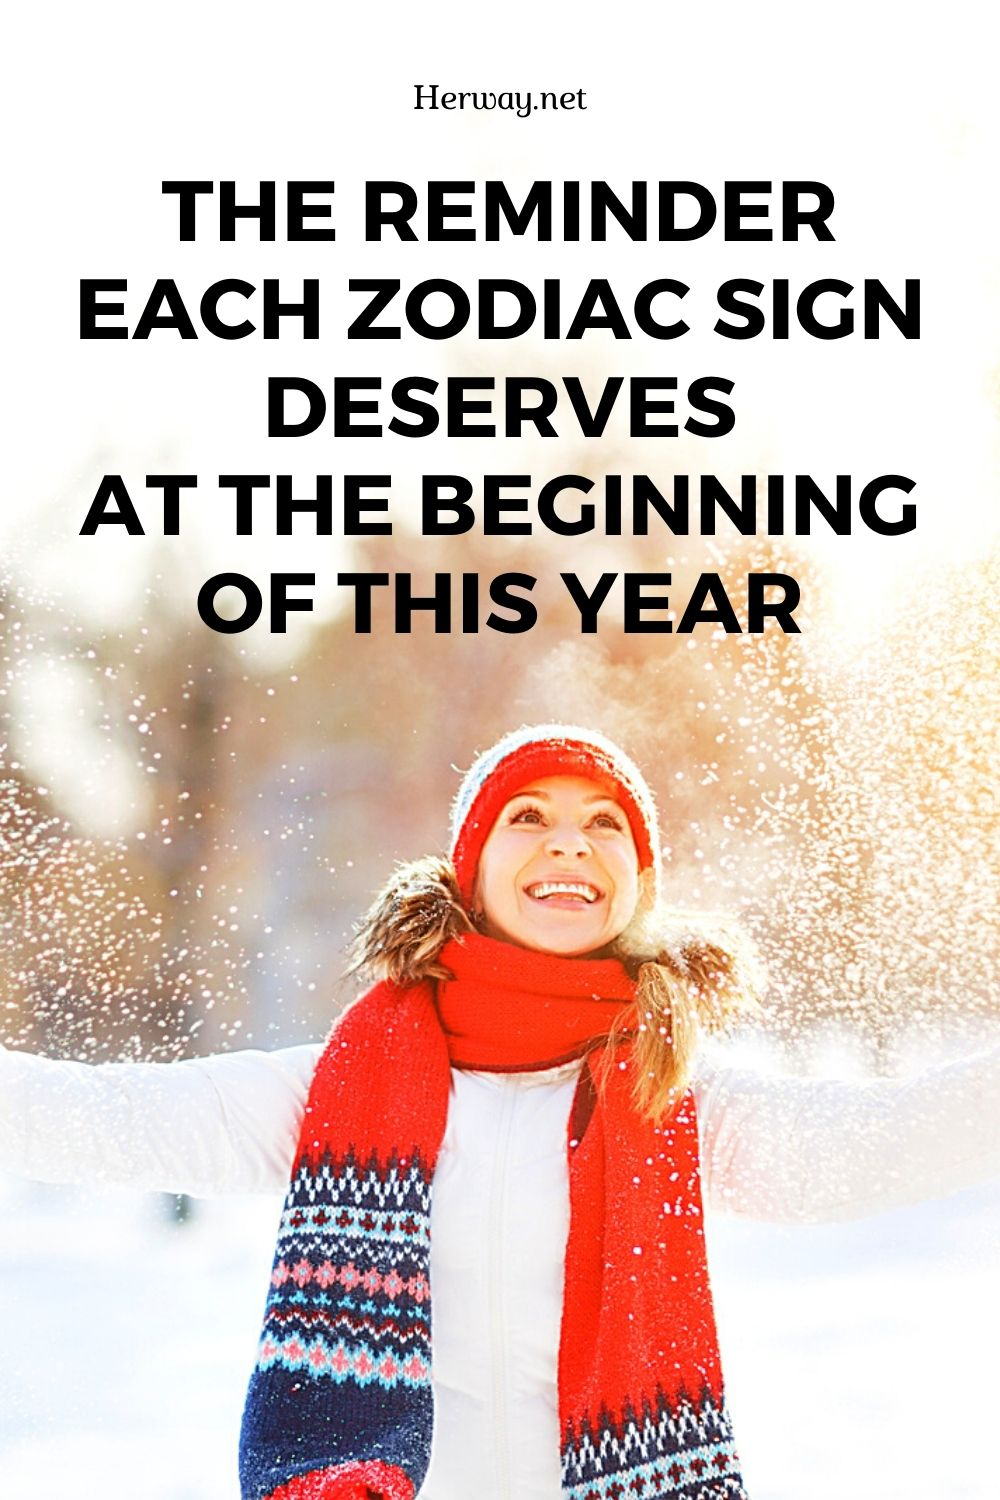 The Reminder Each Zodiac Sign Deserves At The Beginning Of This Year